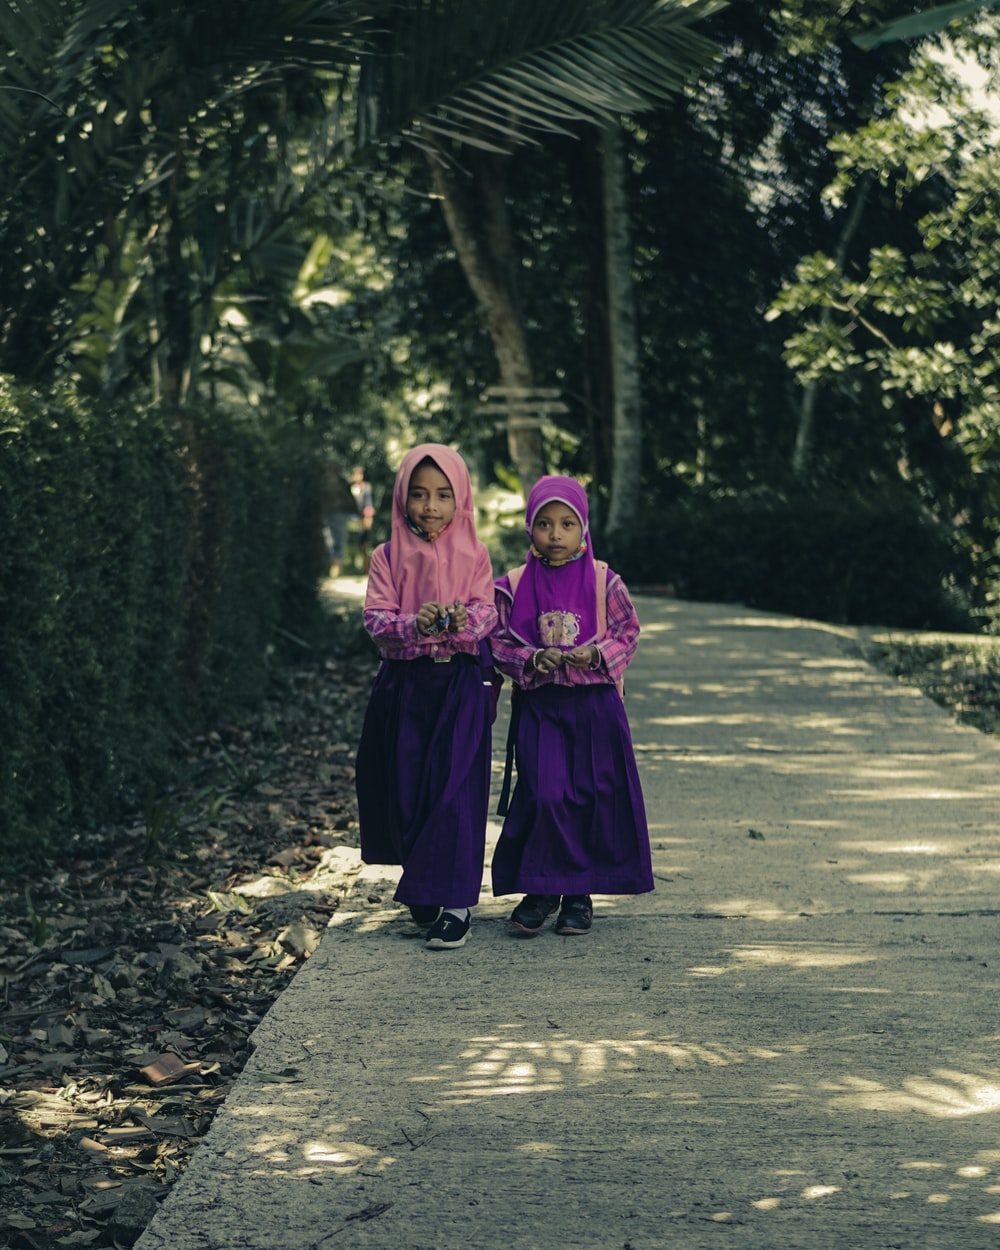 2 girls in pink and black dress standing on gray concrete pathway during daytime